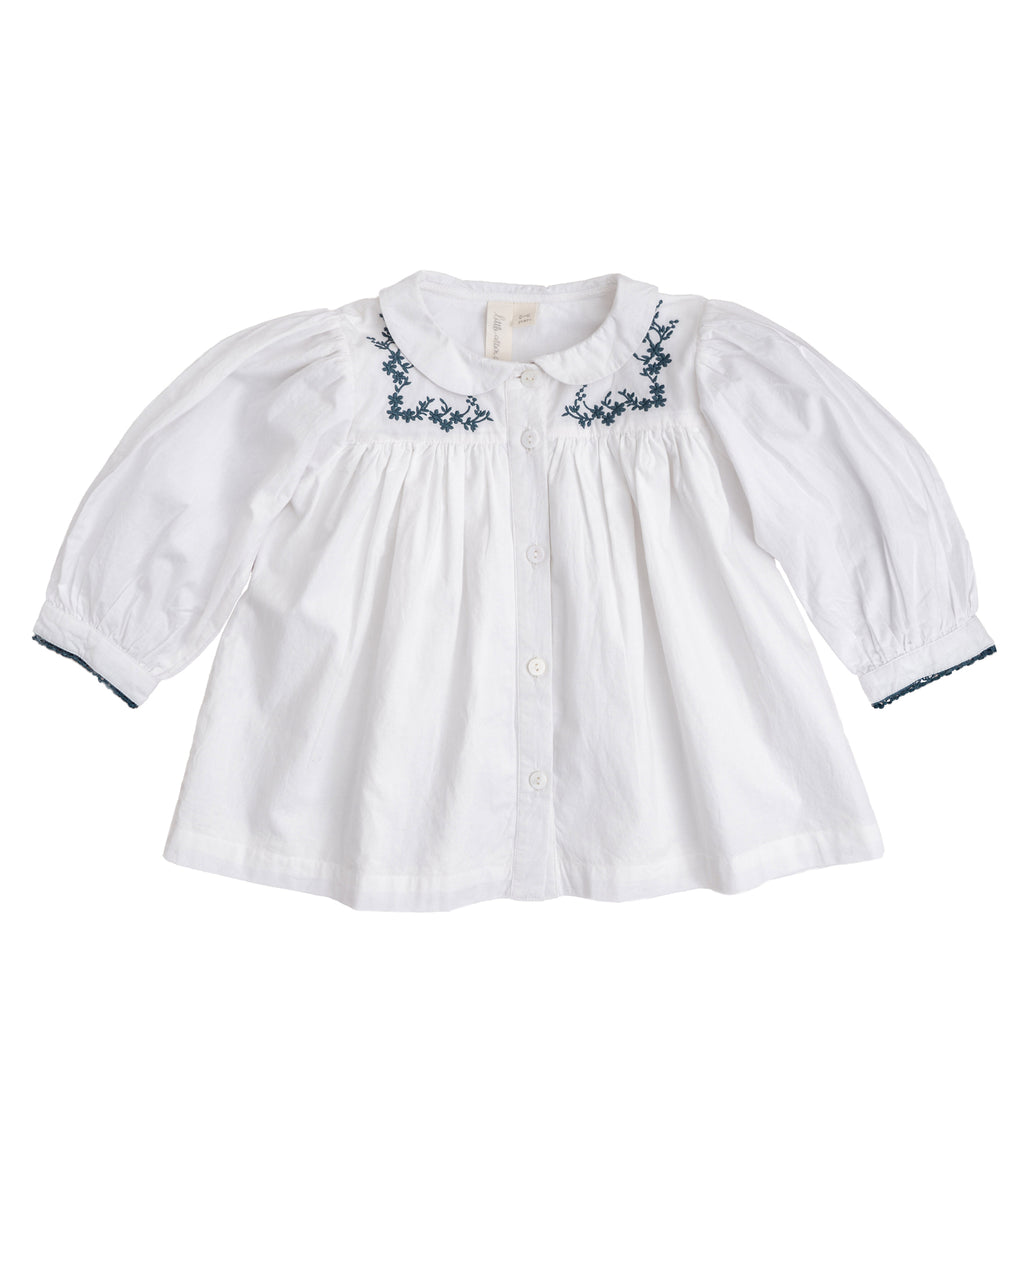 Eleanor blouse – off-white with blue embroidery